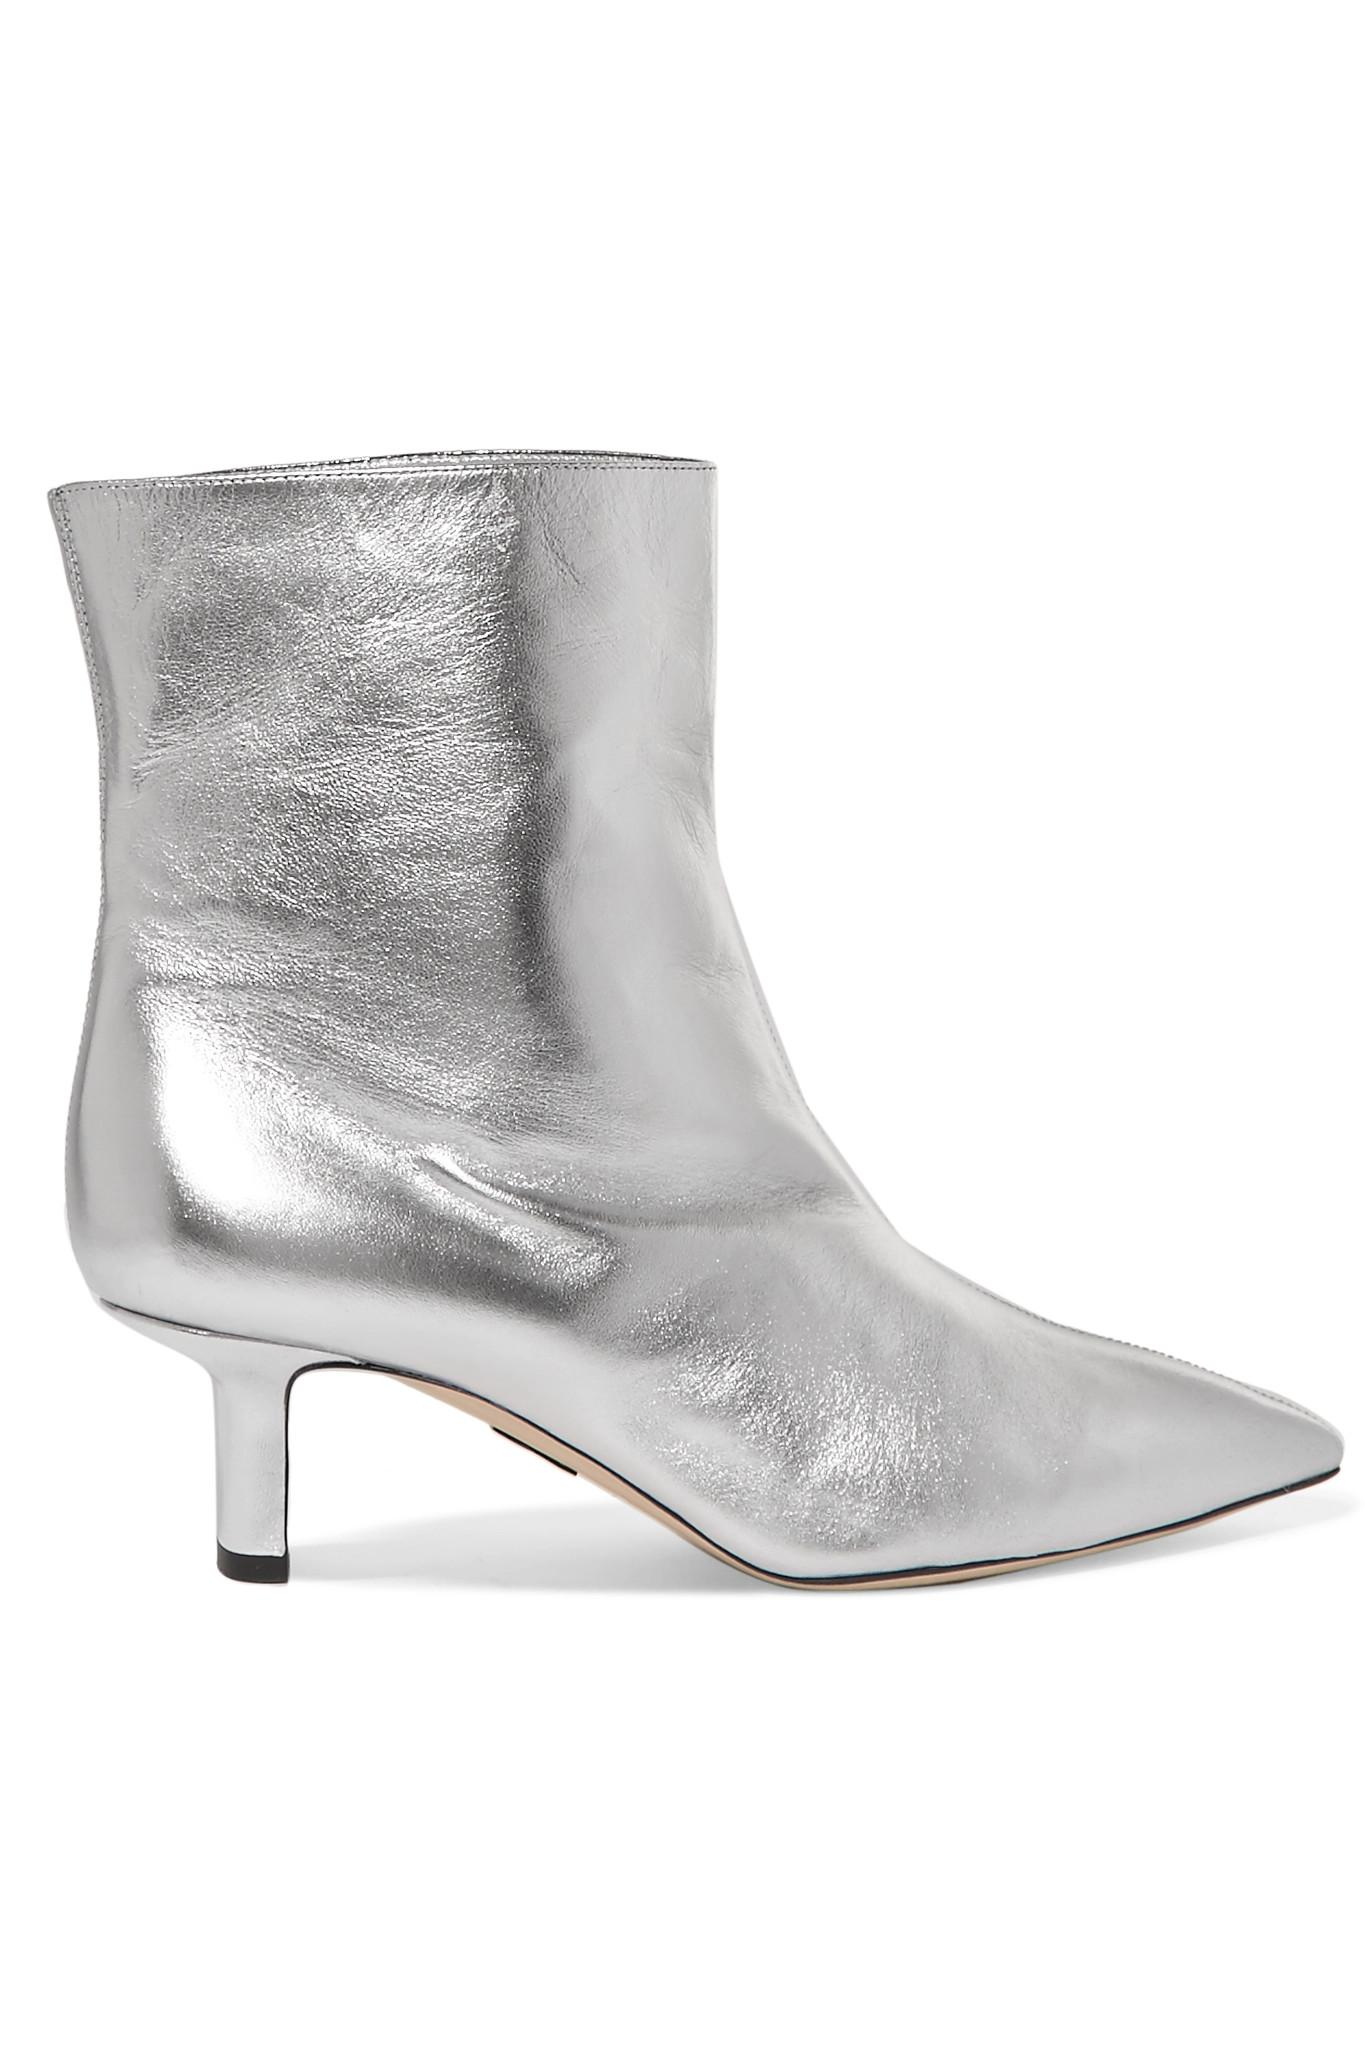 Sale Best Store To Get Cheapest Price For Sale Mangold Metallic Leather Ankle Boots - Silver PAUL ANDREW dlOEs3nm0